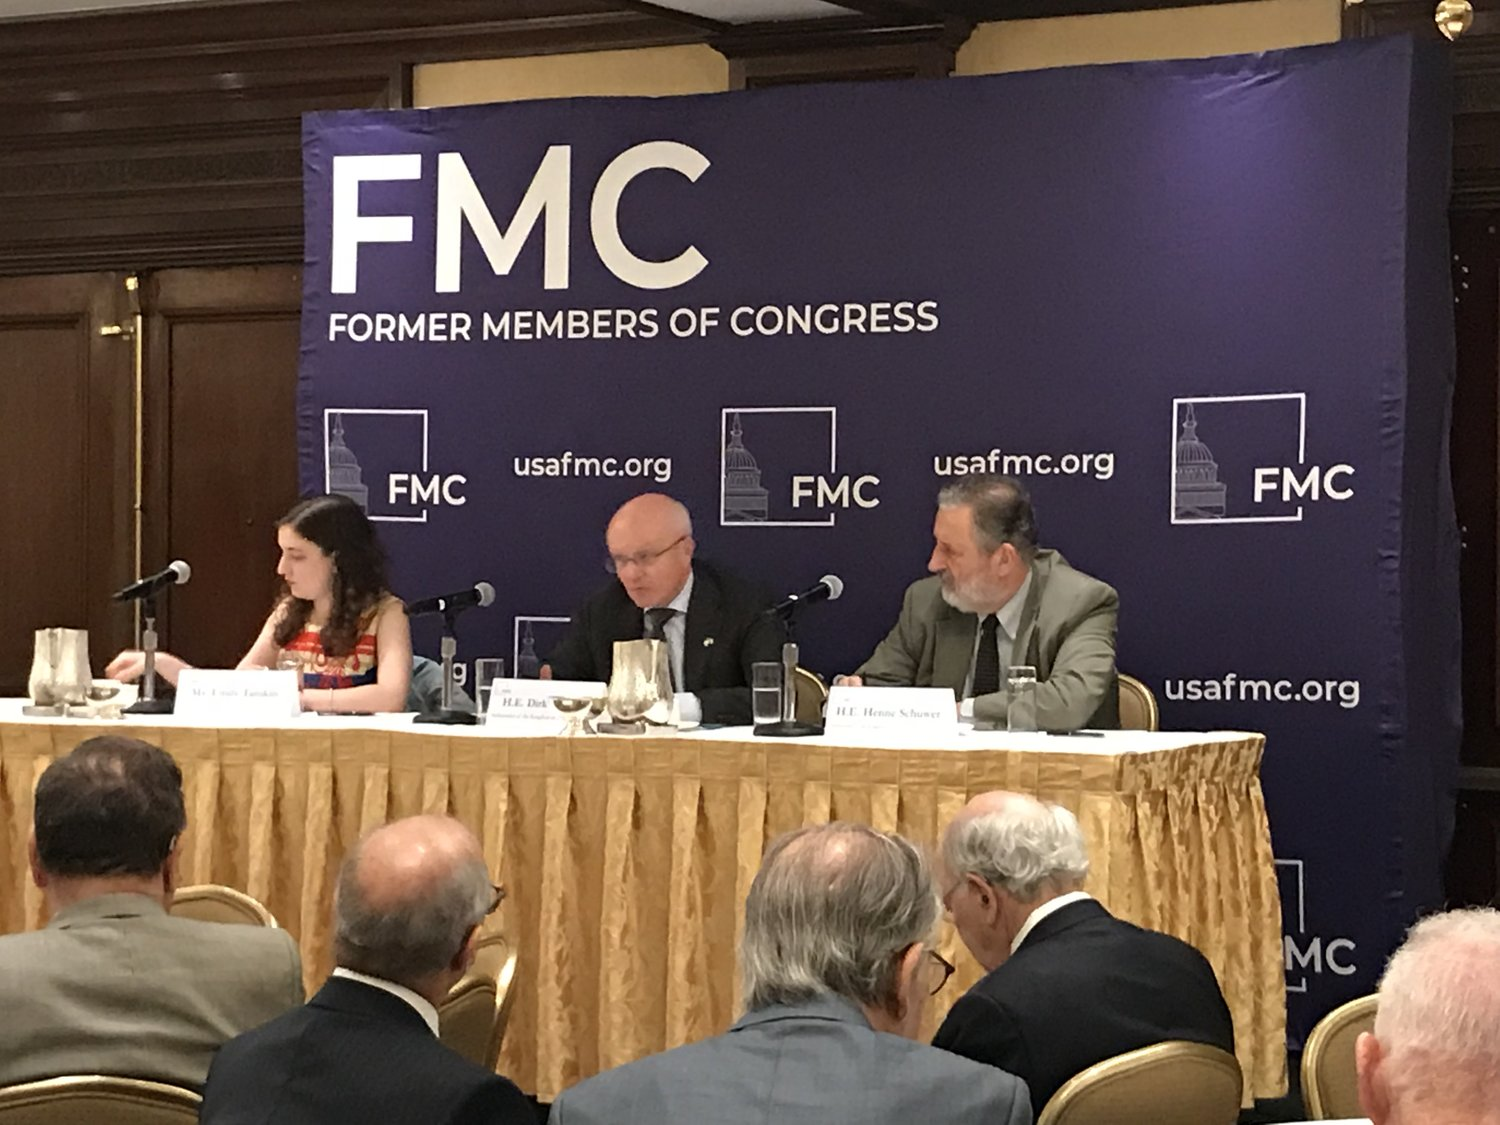 L to R: Emily Tamkin (political journalist from Foreign Policy), H.E. Dirk Wouters (Ambassador of Belgium to the U.S.)H.E. Henne Schuwer (Ambassador of The Netherlands to the U.S.)